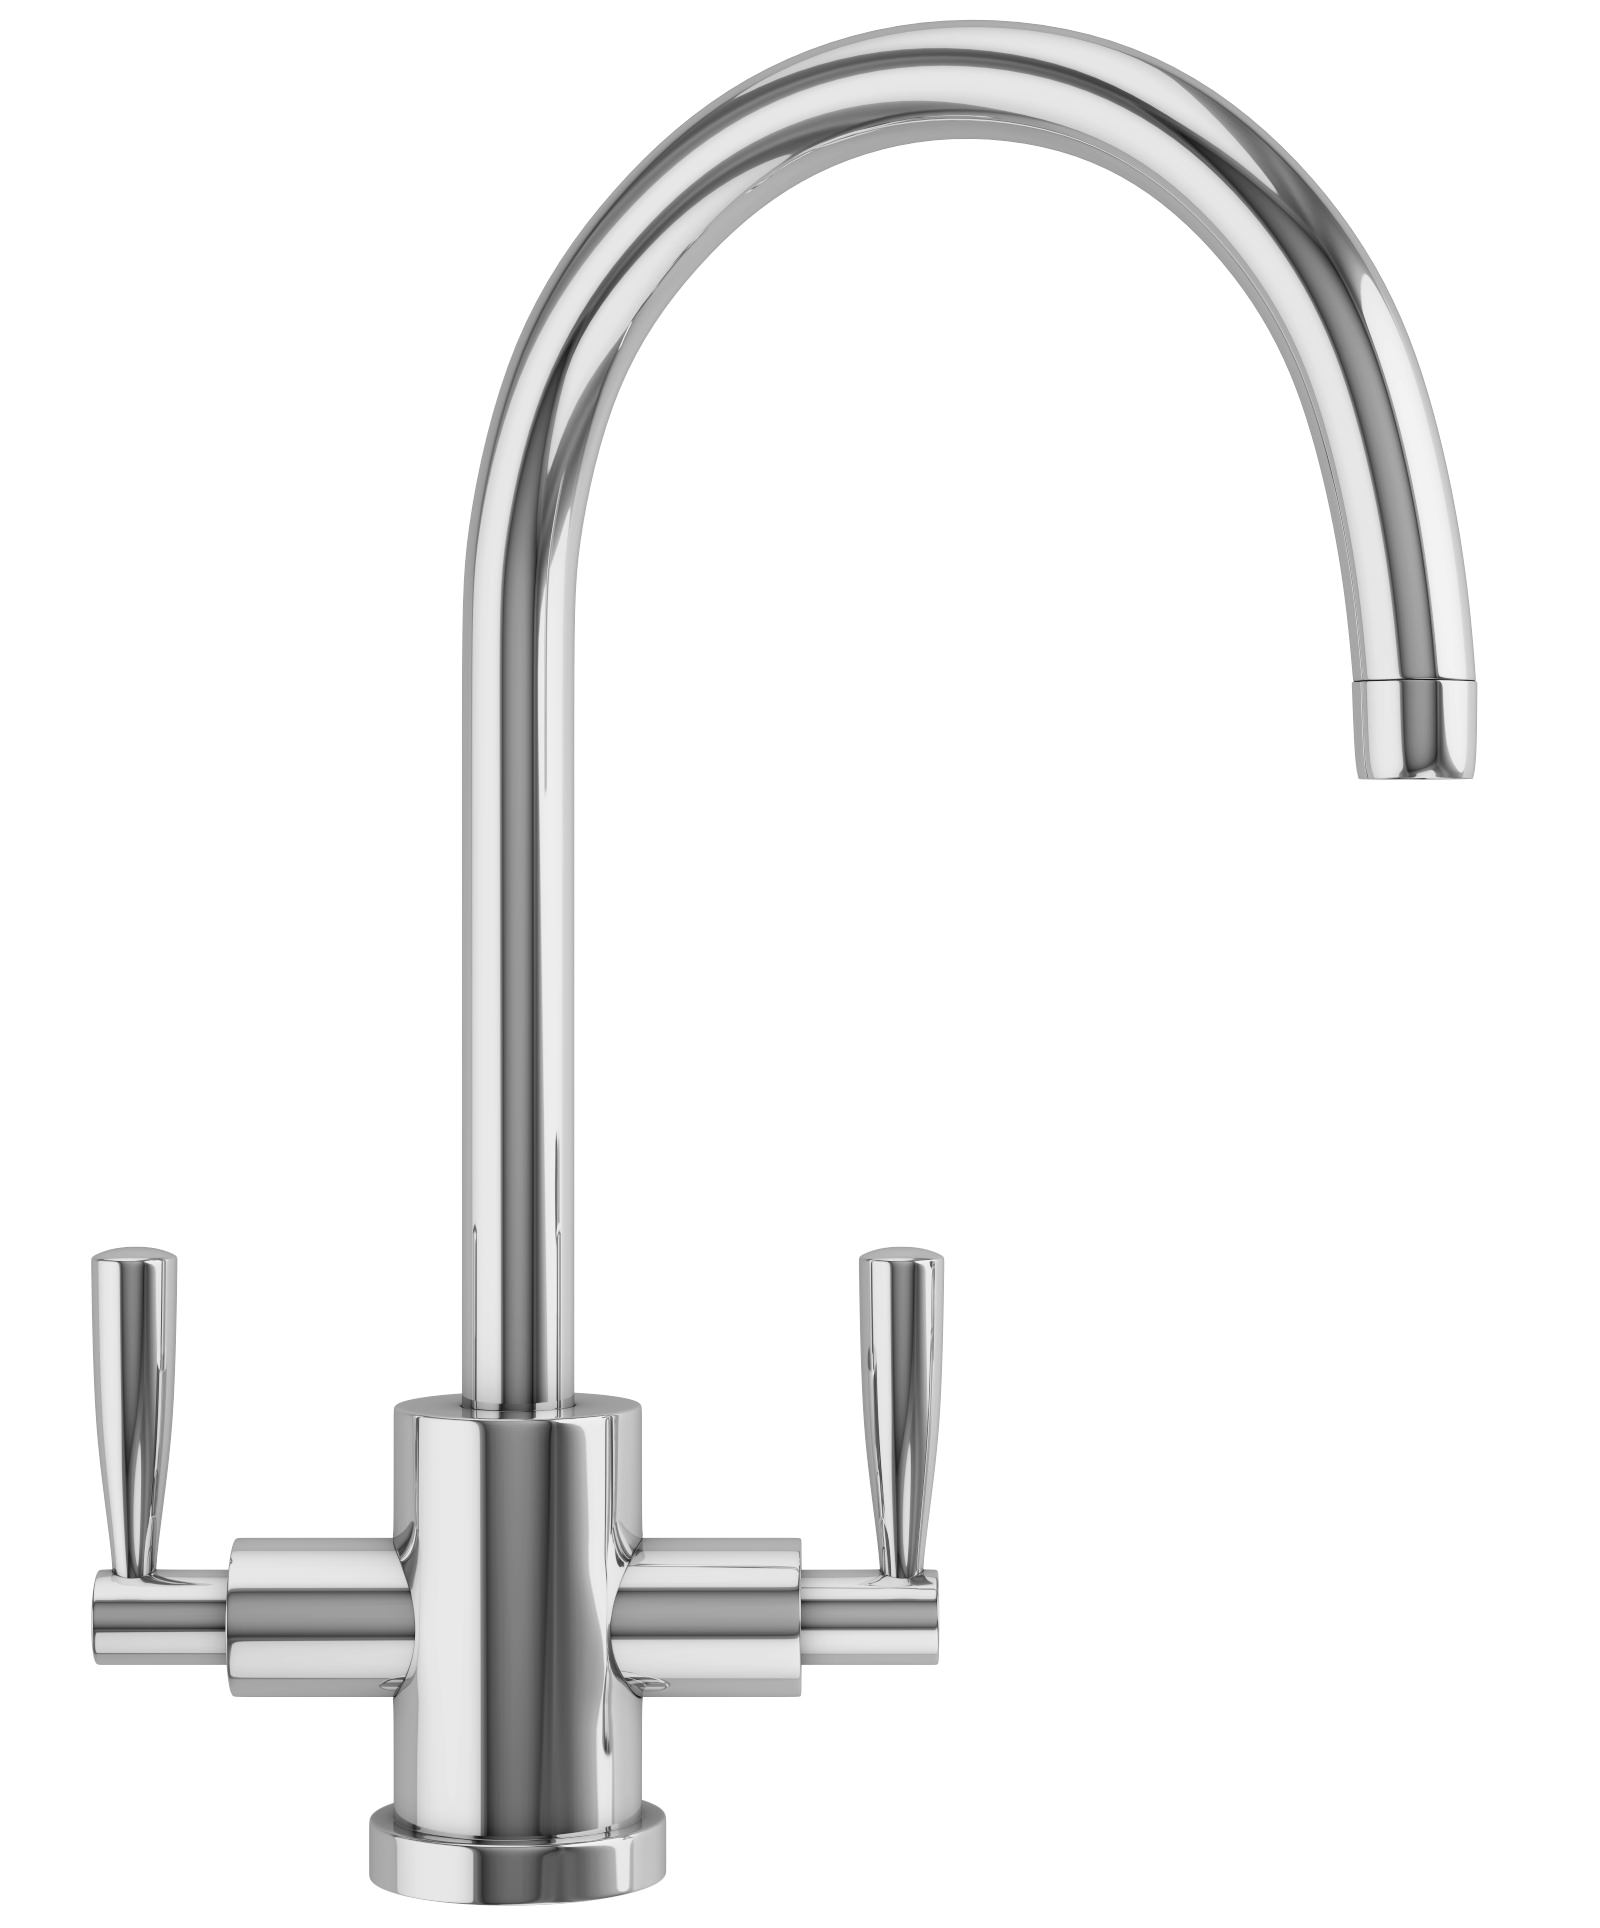 Franke Kitchen Mixer : ... taps kitchen mixer taps franke olympus kitchen sink mixer tap chrome